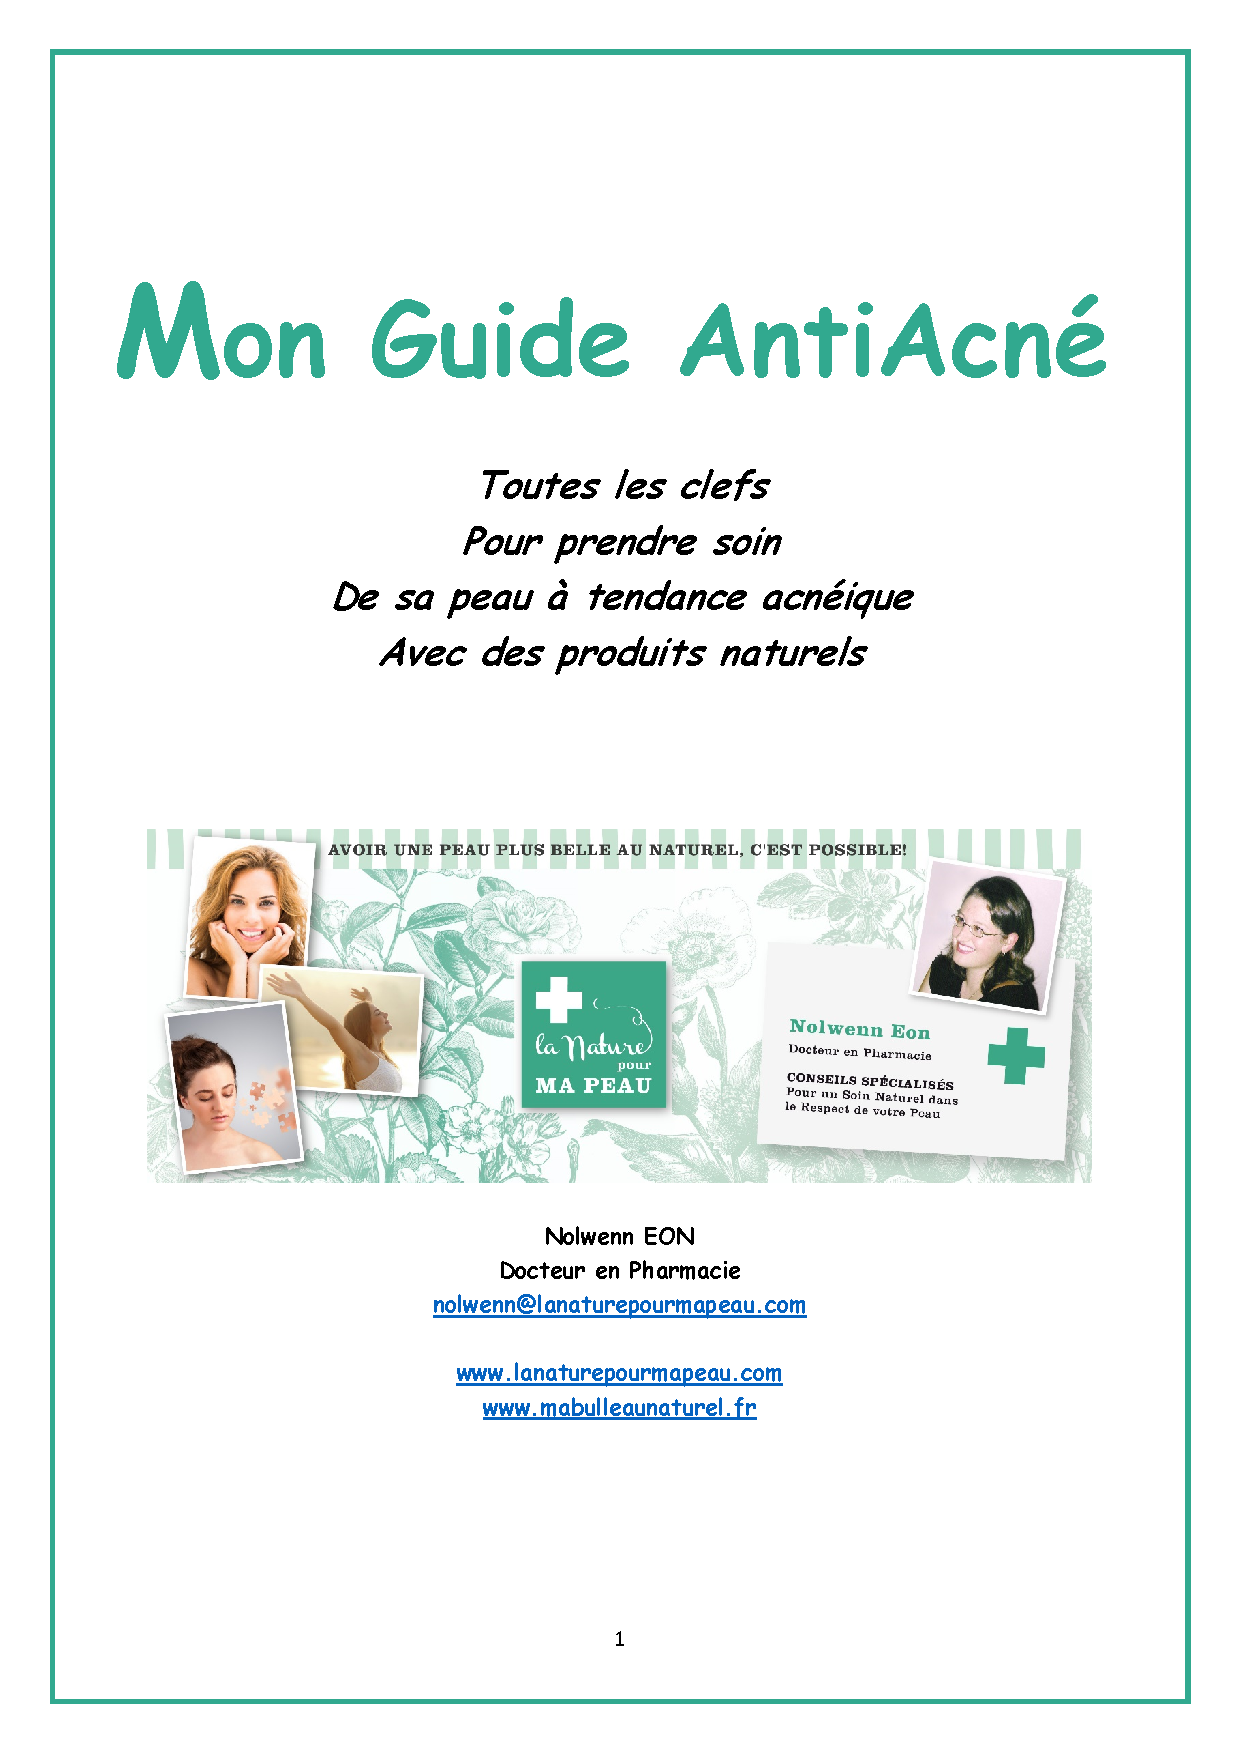 ~ NEWS ! Mon Guide Complet AntiAcné ~